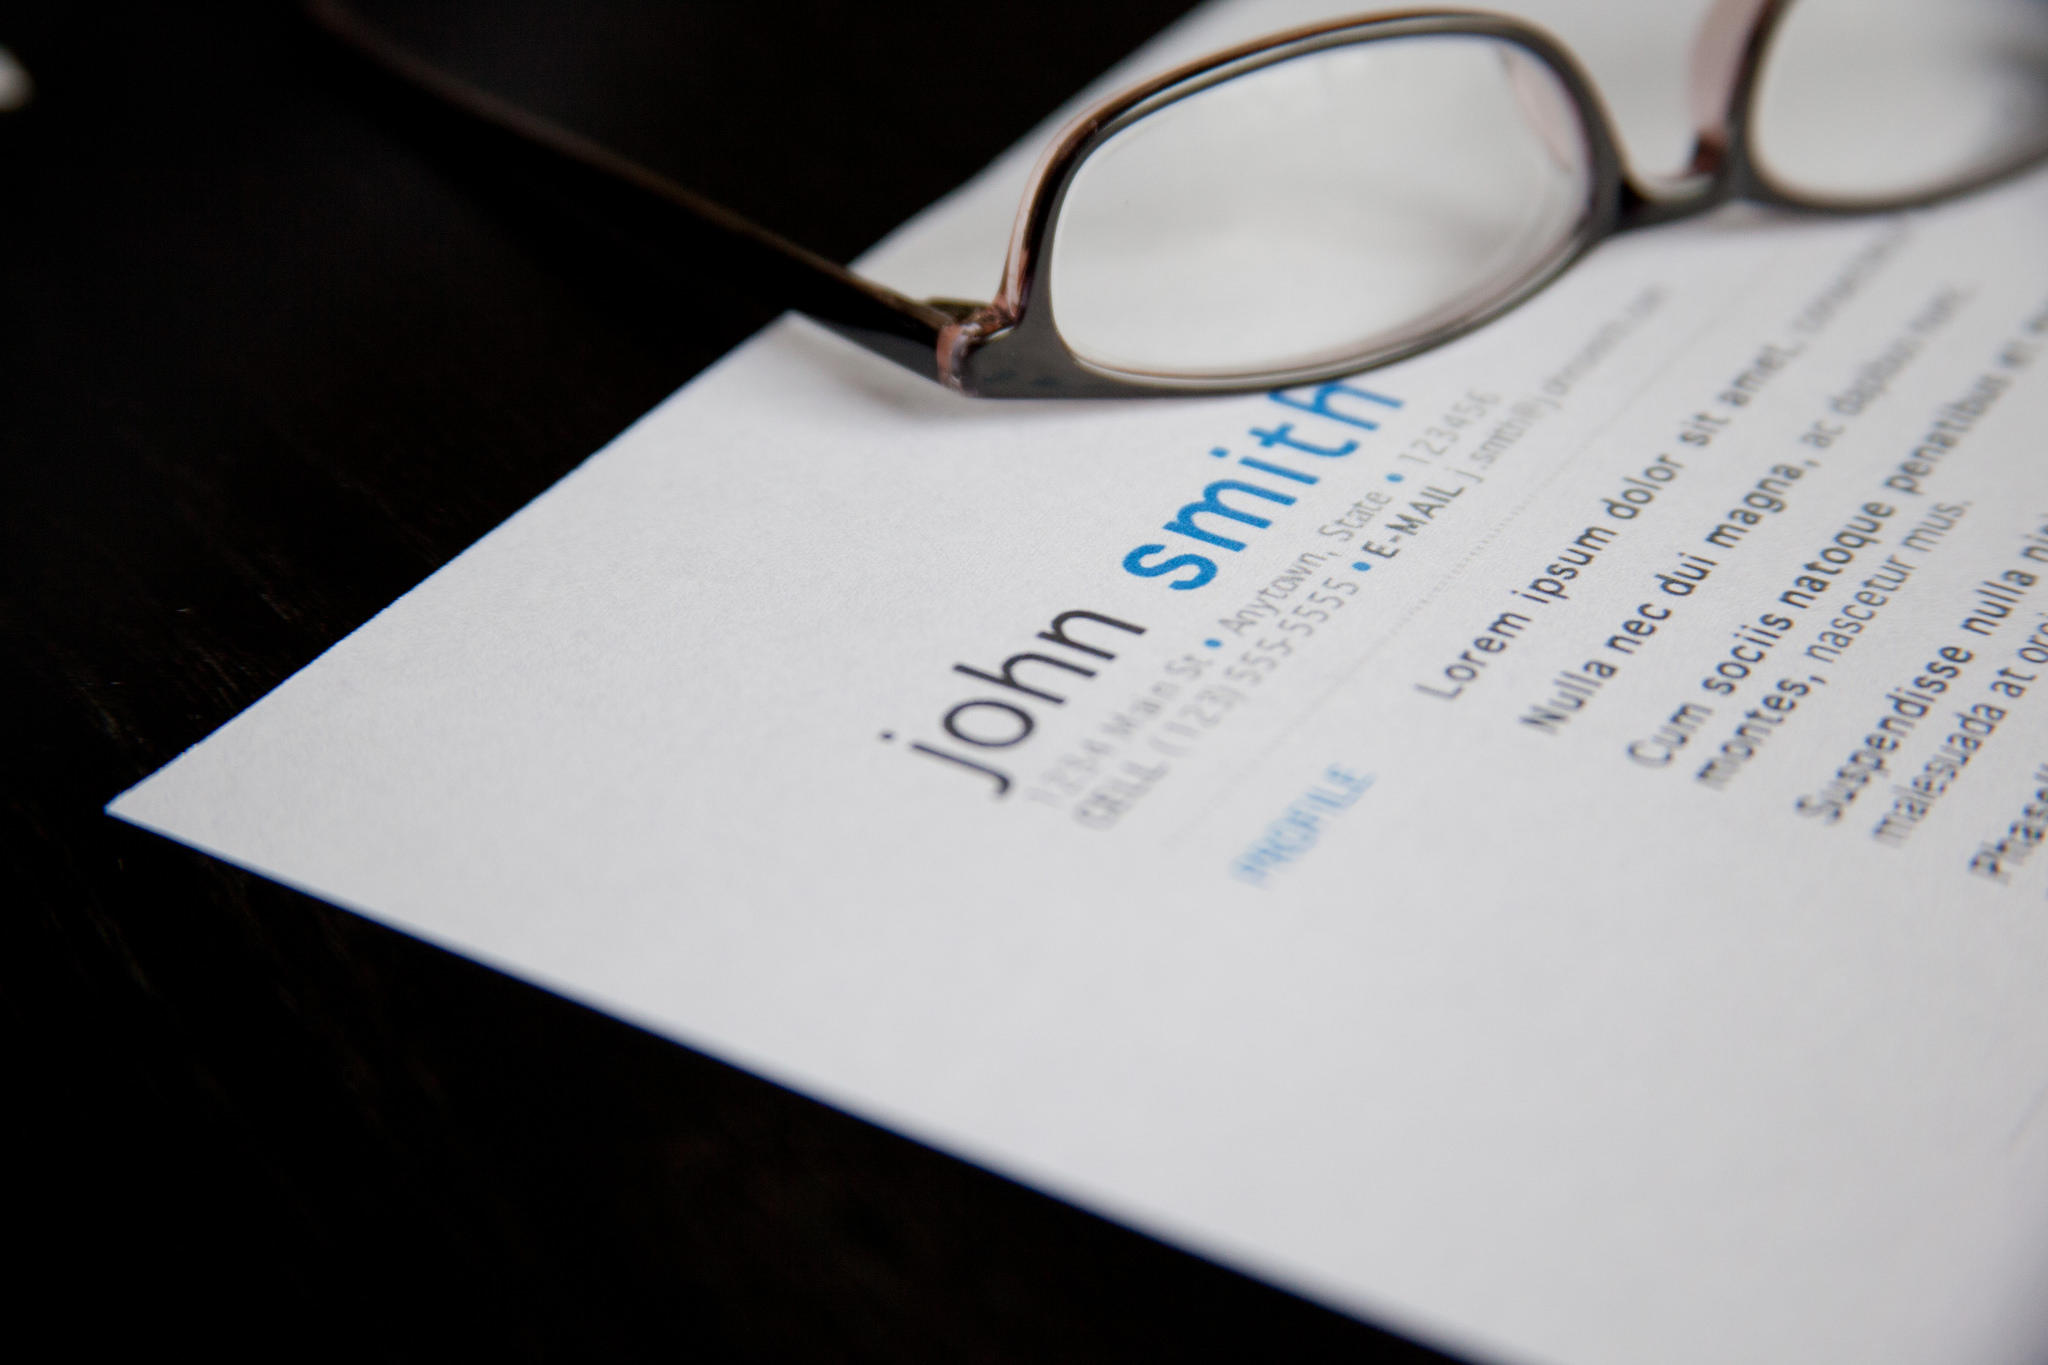 11 Fresh How To Make Resume Fit On One Page for Gallery